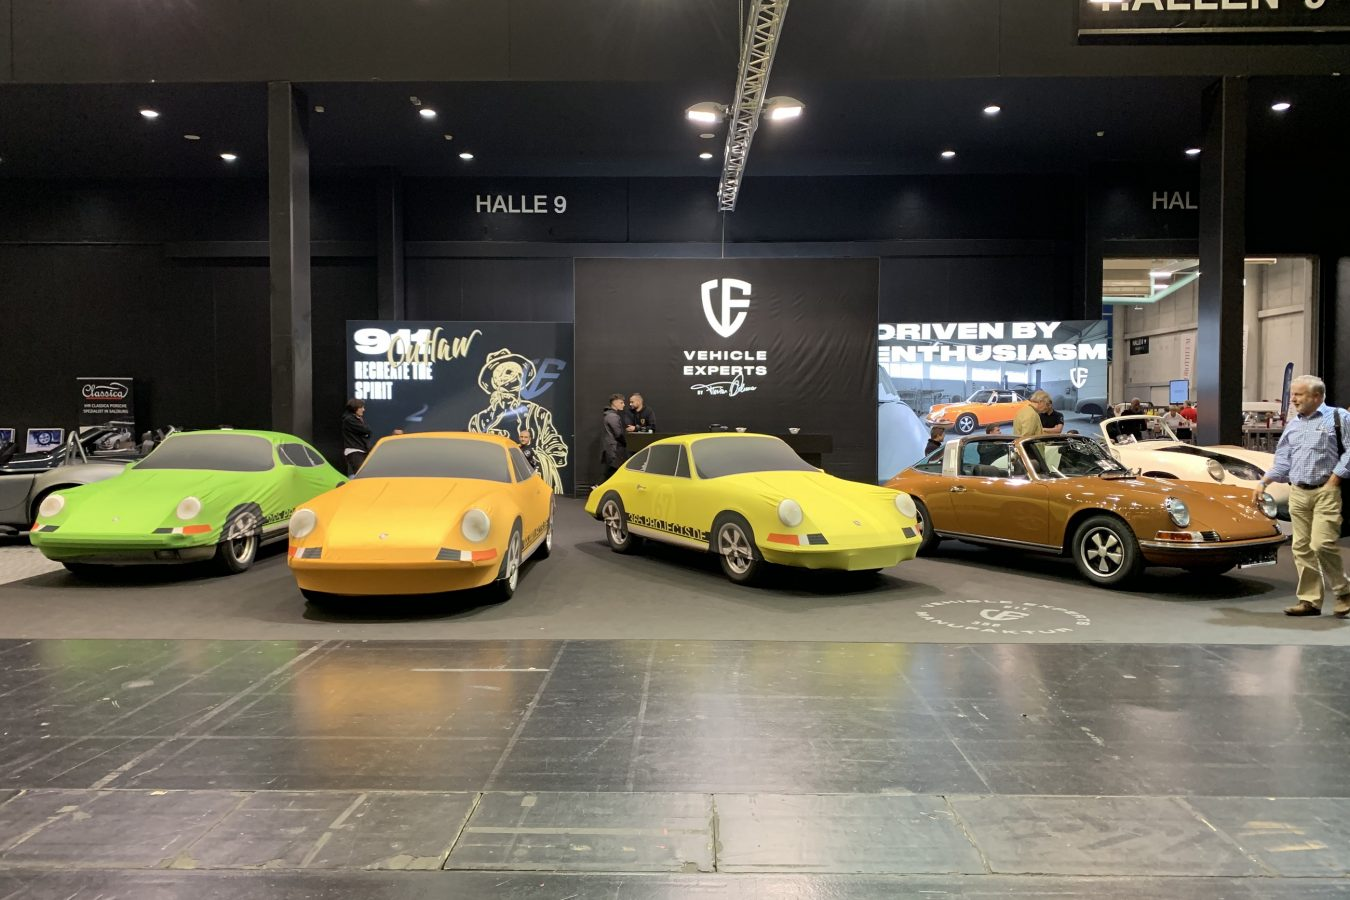 Vehicle-Experts auf der Classic Expo Salzburg 2019 1